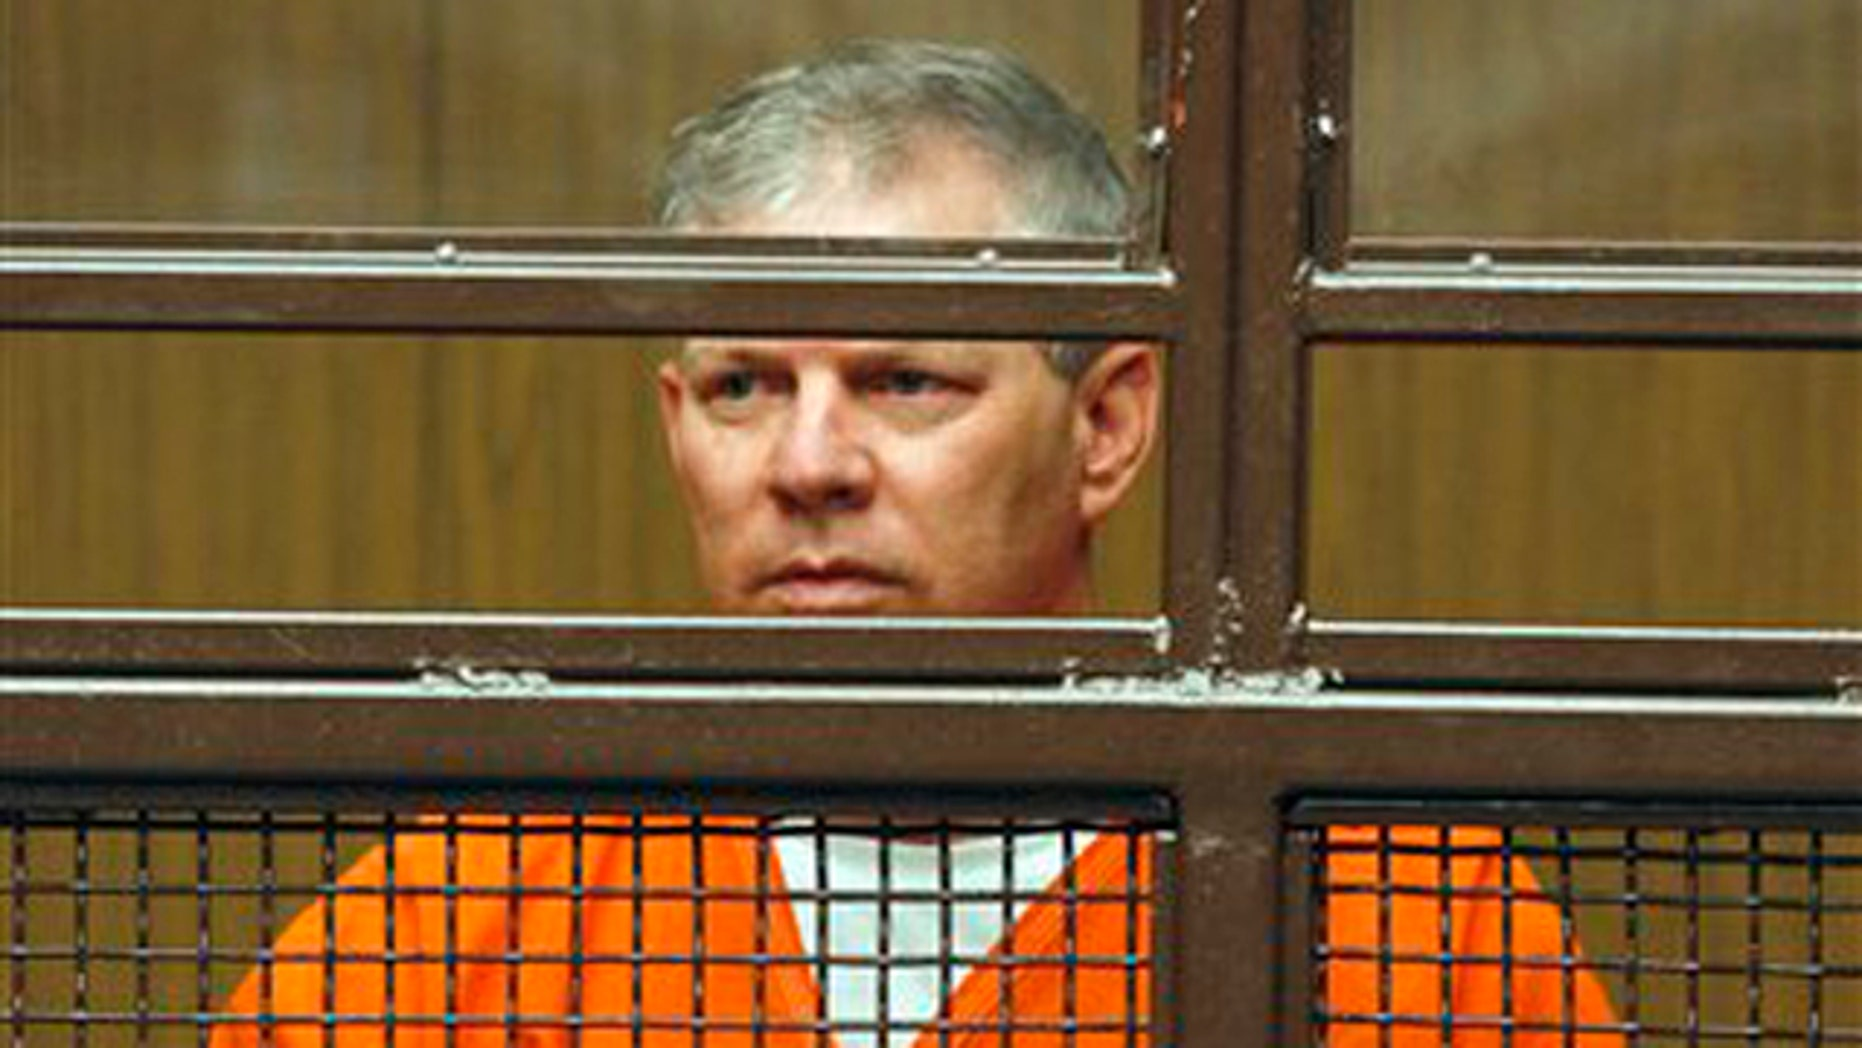 June 16, 2011: In this file photo, former baseball player Lenny Dykstra appears in a courtroom in San Fernando, Calif.